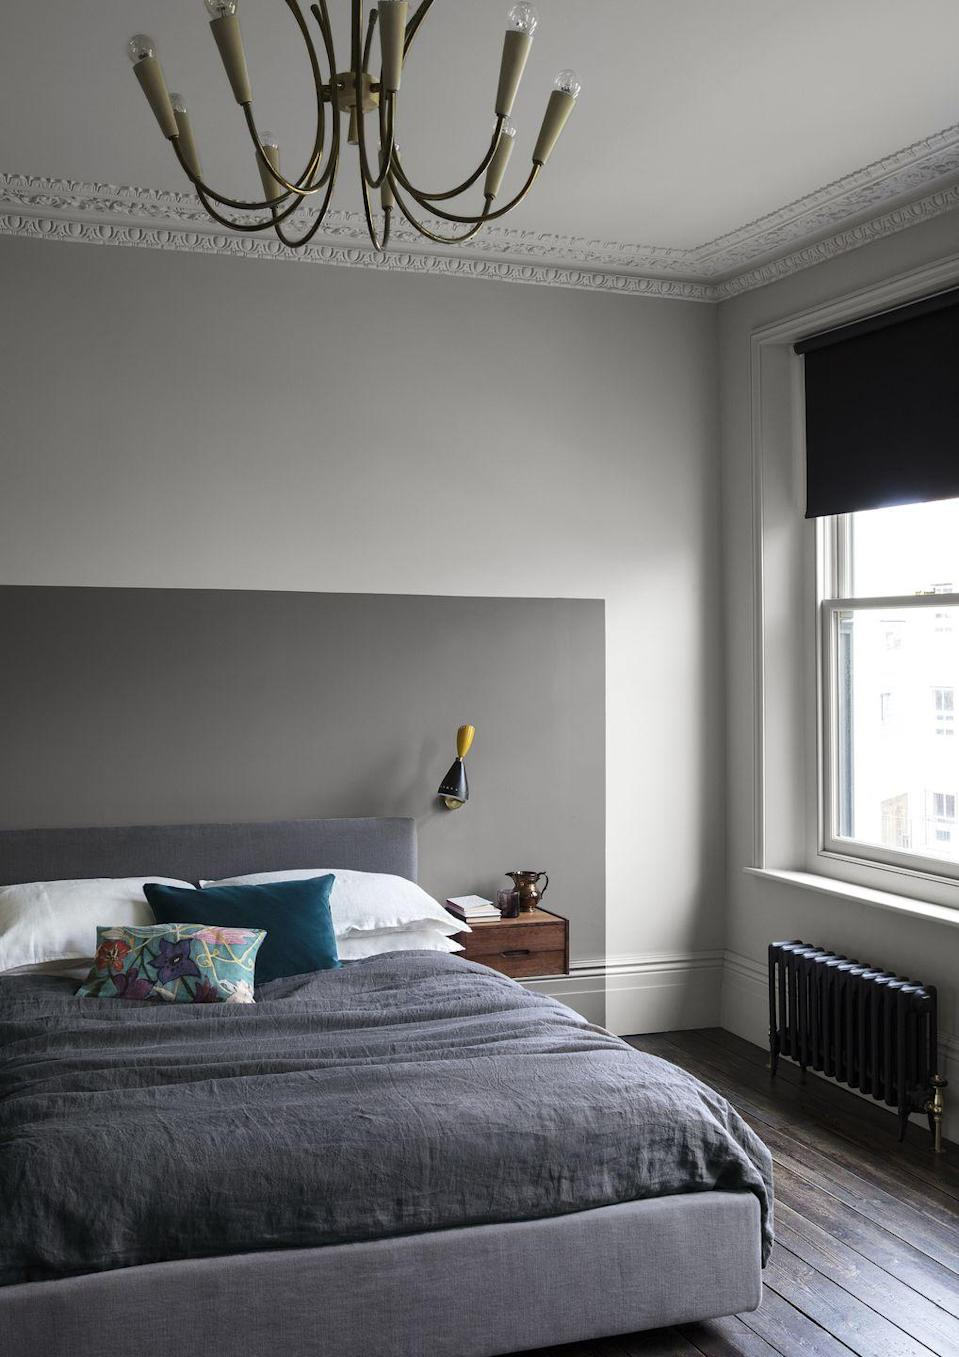 """<p>A great way to zone a space and create a faux headboard is with paint. To recreate this clever yet simple grey bedroom idea, simply mark out where the bed is going to go and outline with a pencil where you want the 'headboard' to be. Use masking tape to keep the paint from blurring, and just paint in the square. Continue the line down onto the skirting board for a designer finish.</p><p>Top Tip: To build up a tonal grey bedroom scheme, choose a paler grey on the rest of the walls.</p><p>Pictured: Ceiling: Slate II, Walls: Slate IV, Headboard: Sharkskin, all Pure Matt Emulsion, £51 for 2.5 ltrs, <a href=""""https://www.paintandpaperlibrary.com/"""" rel=""""nofollow noopener"""" target=""""_blank"""" data-ylk=""""slk:Paint & Paper Library"""" class=""""link rapid-noclick-resp"""">Paint & Paper Library</a></p>"""